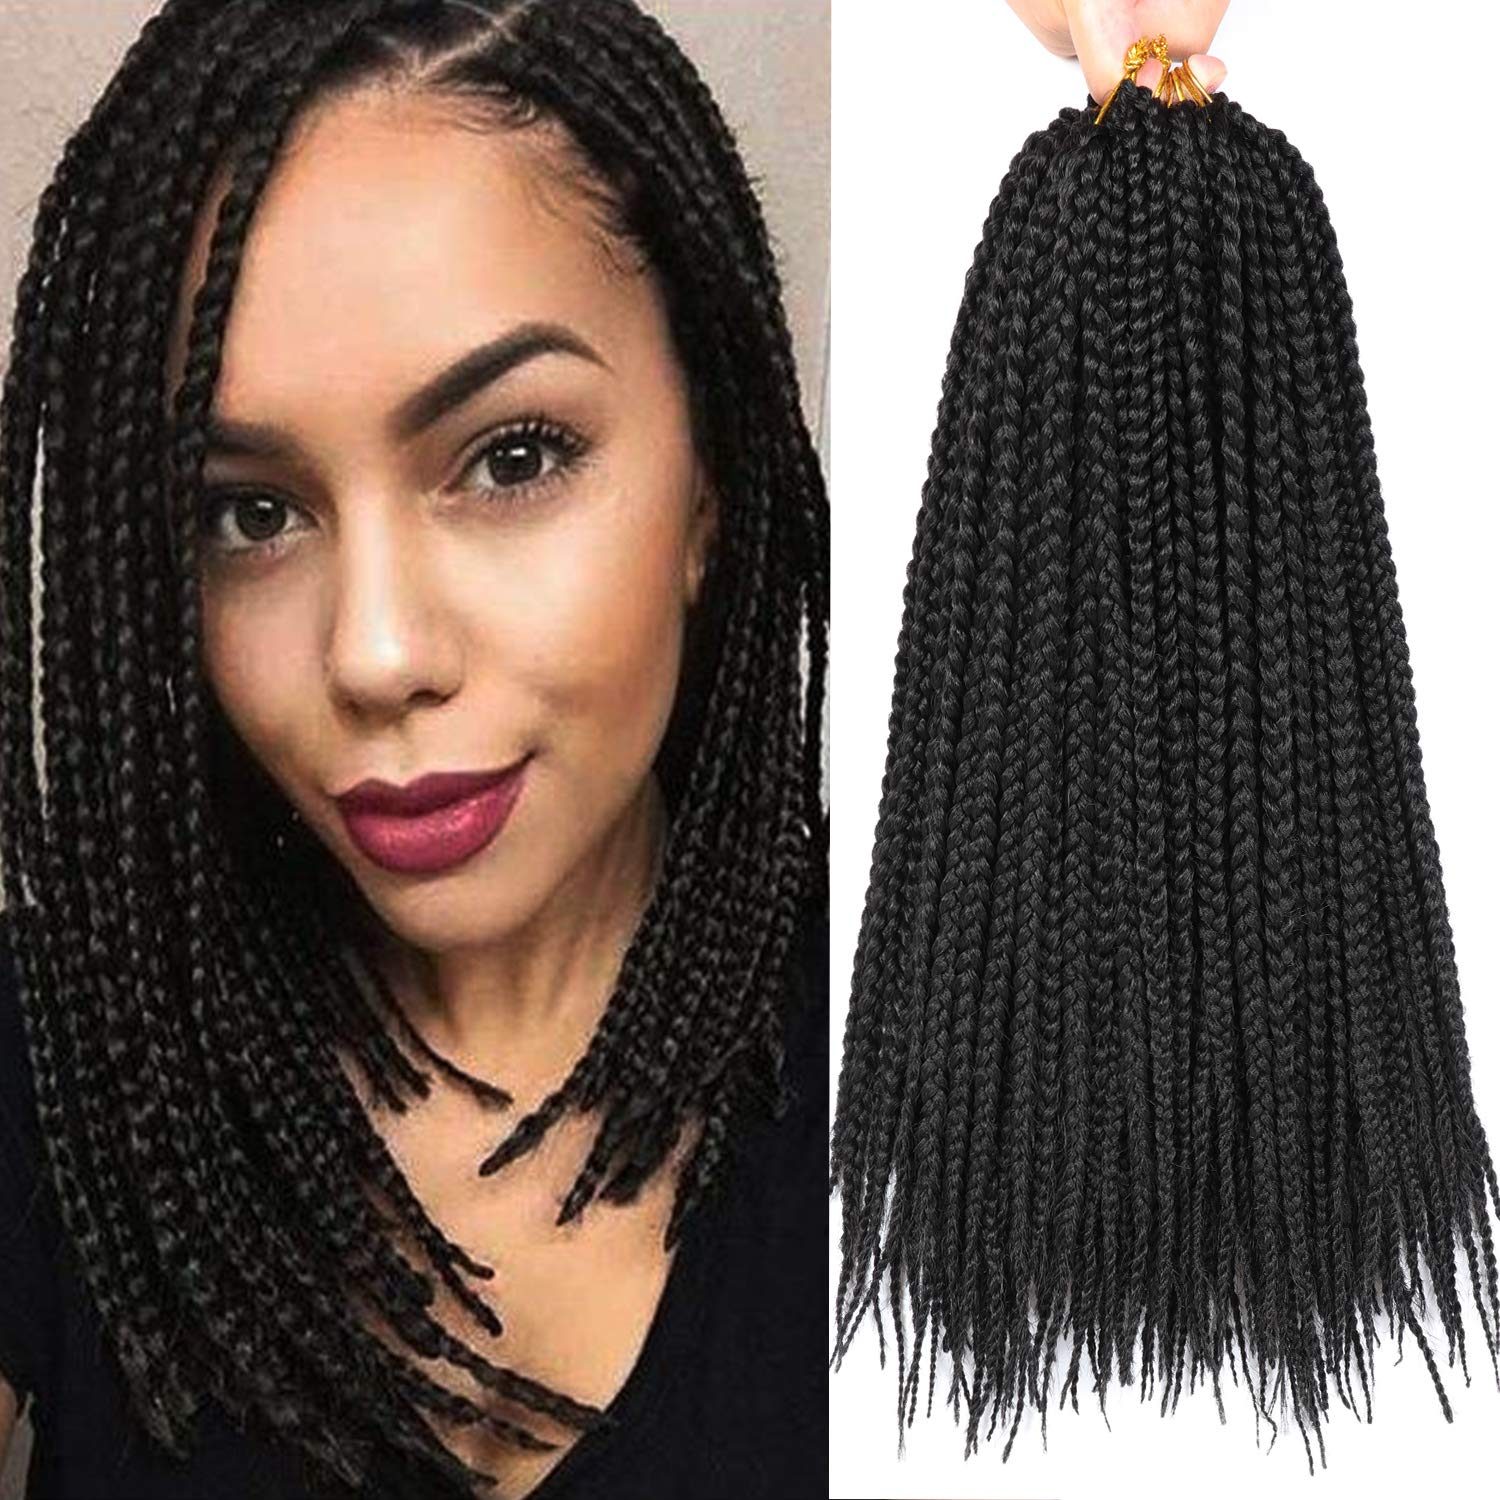 Buy 7 Packs 14 Inch Medium Box Braids Crochet Hair Extensions Synthetic Hair Crochet Braids Kanekalon Jumpo Braiding Hair 20 Strands Pack 14 Inch 1b Online At Low Prices In India Amazon In